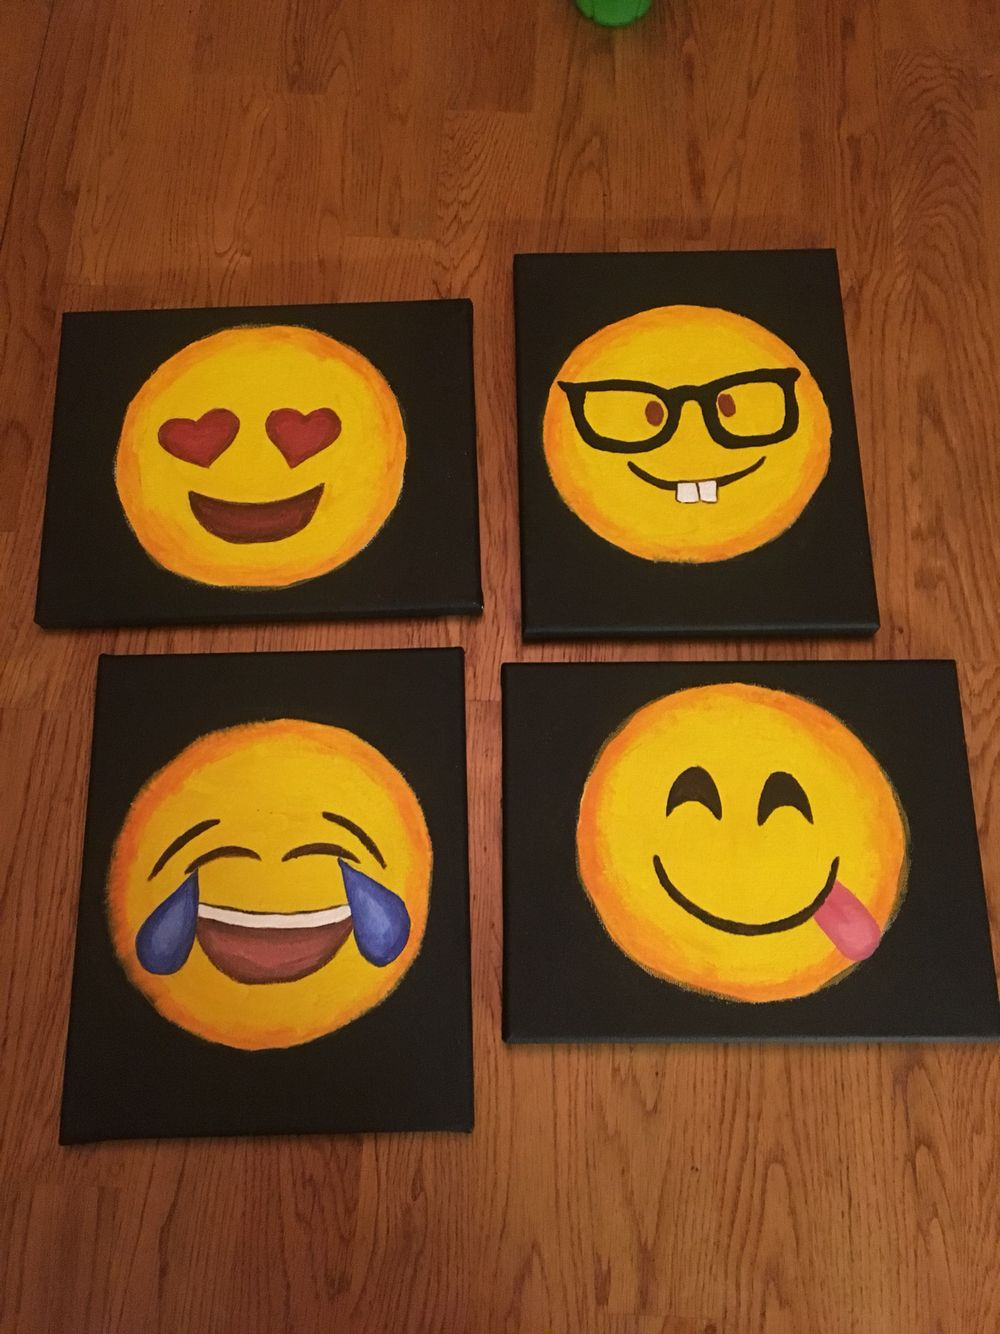 This Was My First Time Painting On Canvas Super Easy And Really Cute Emojis Emojiclassroom Kids Canvas Art Kids Canvas Painting Kids Painting Party